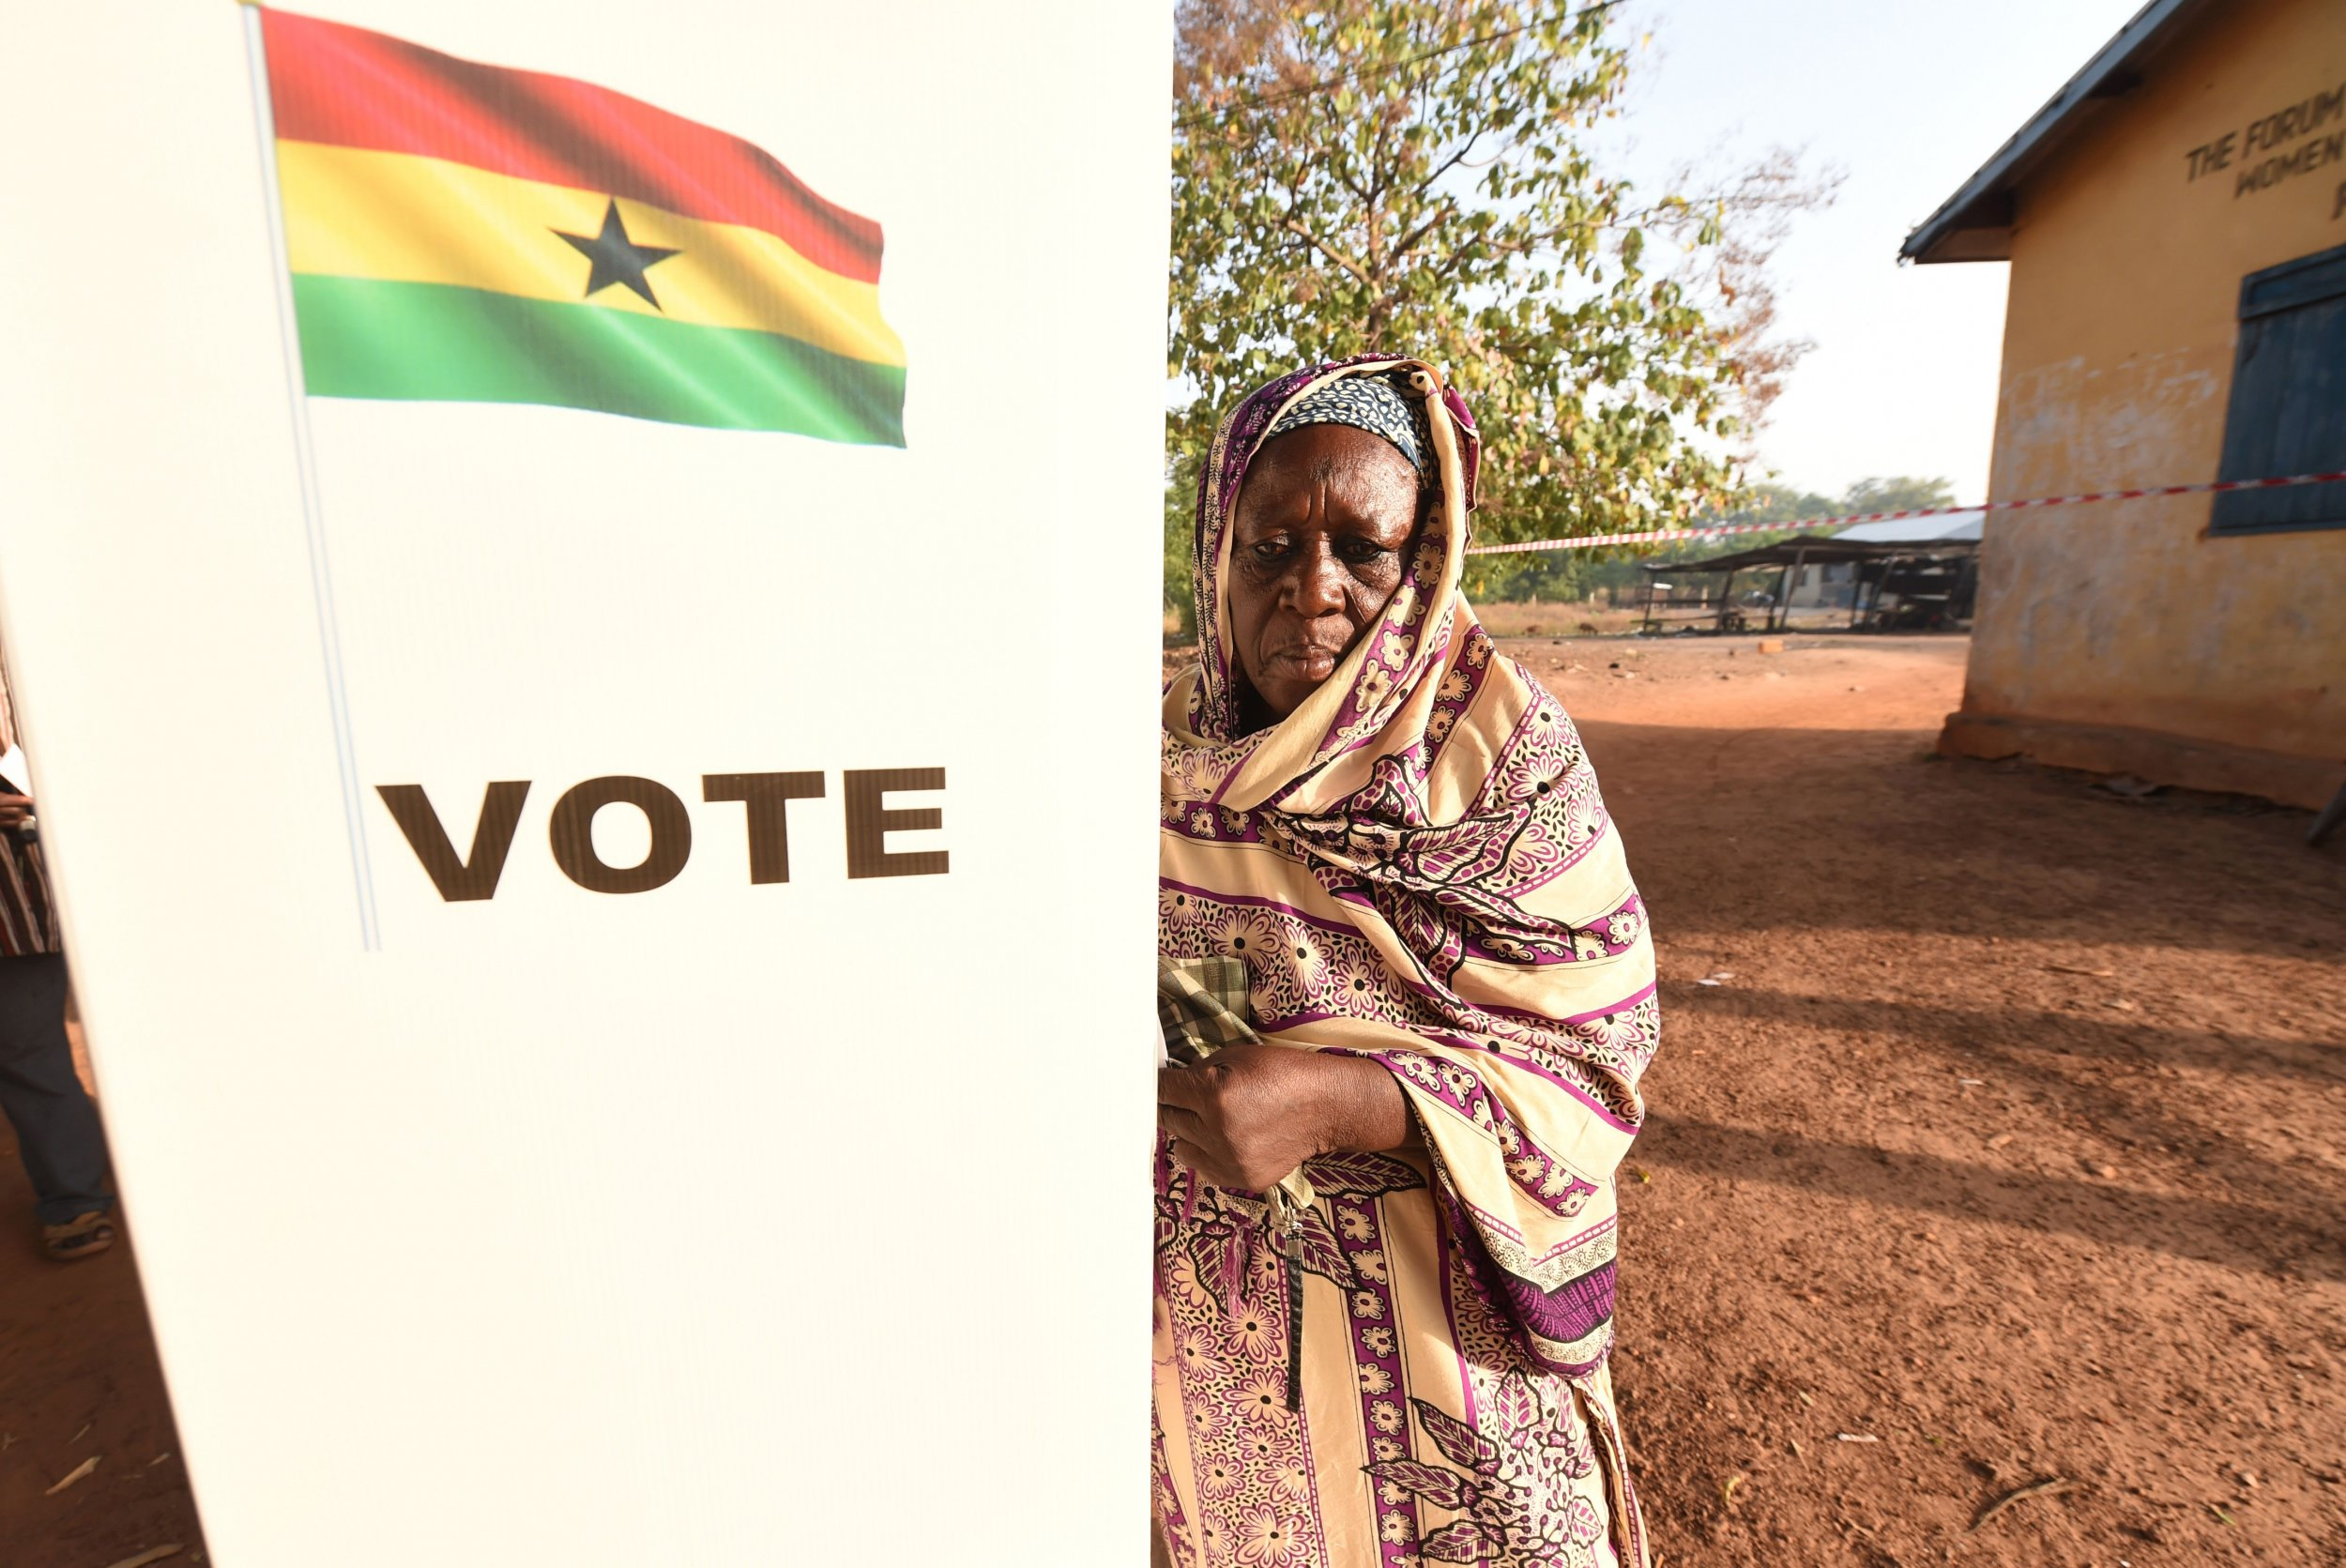 Ghana voting booth